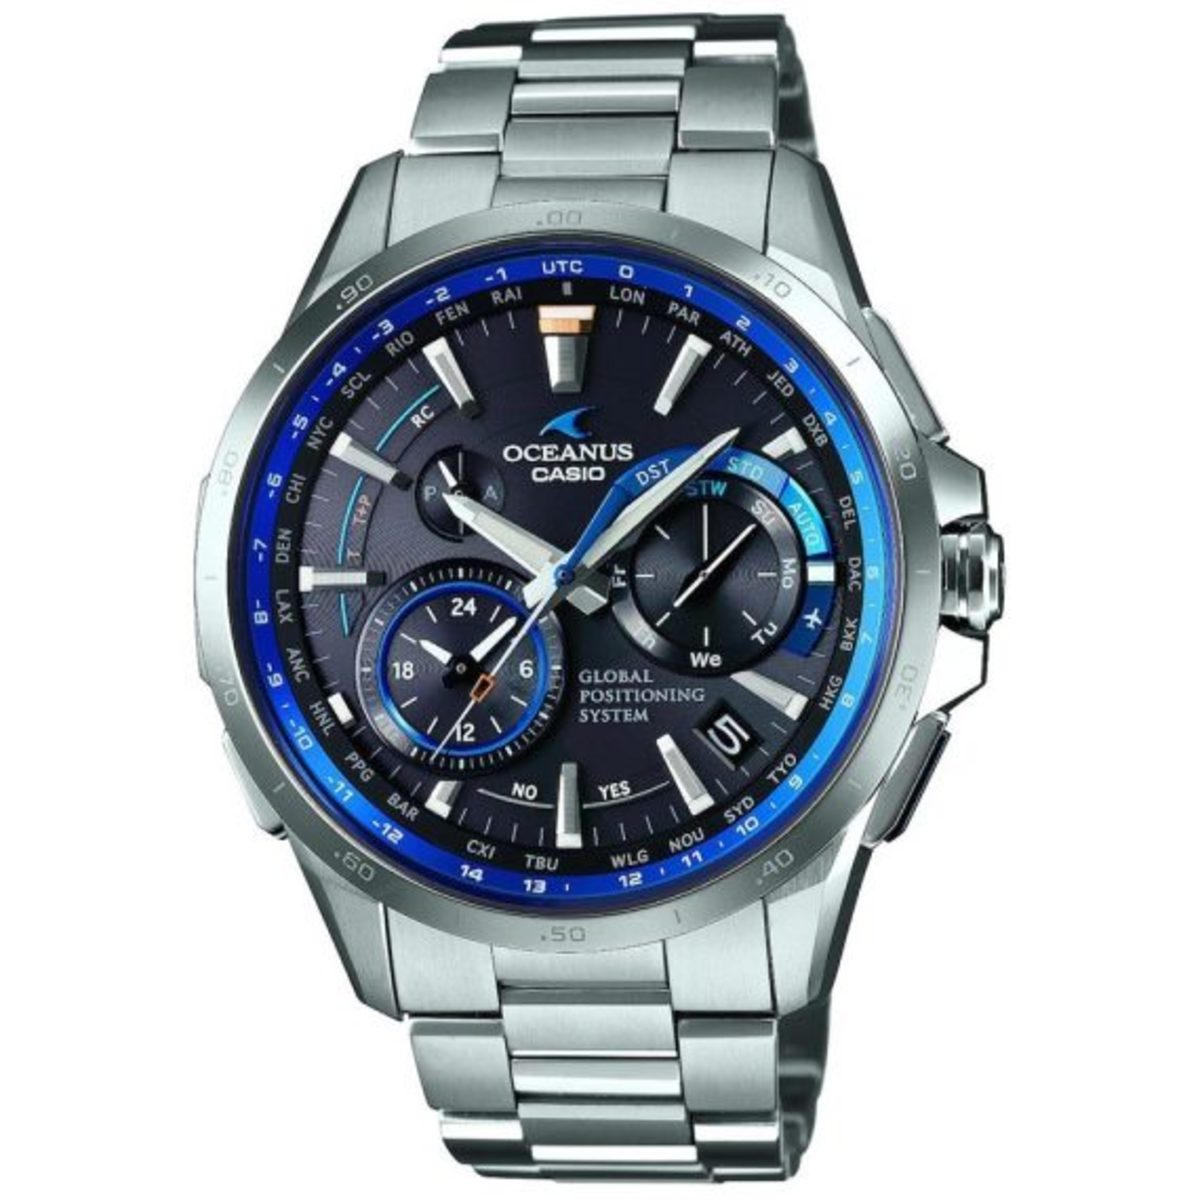 casio-oceanus-ocw-g1000-watch-02